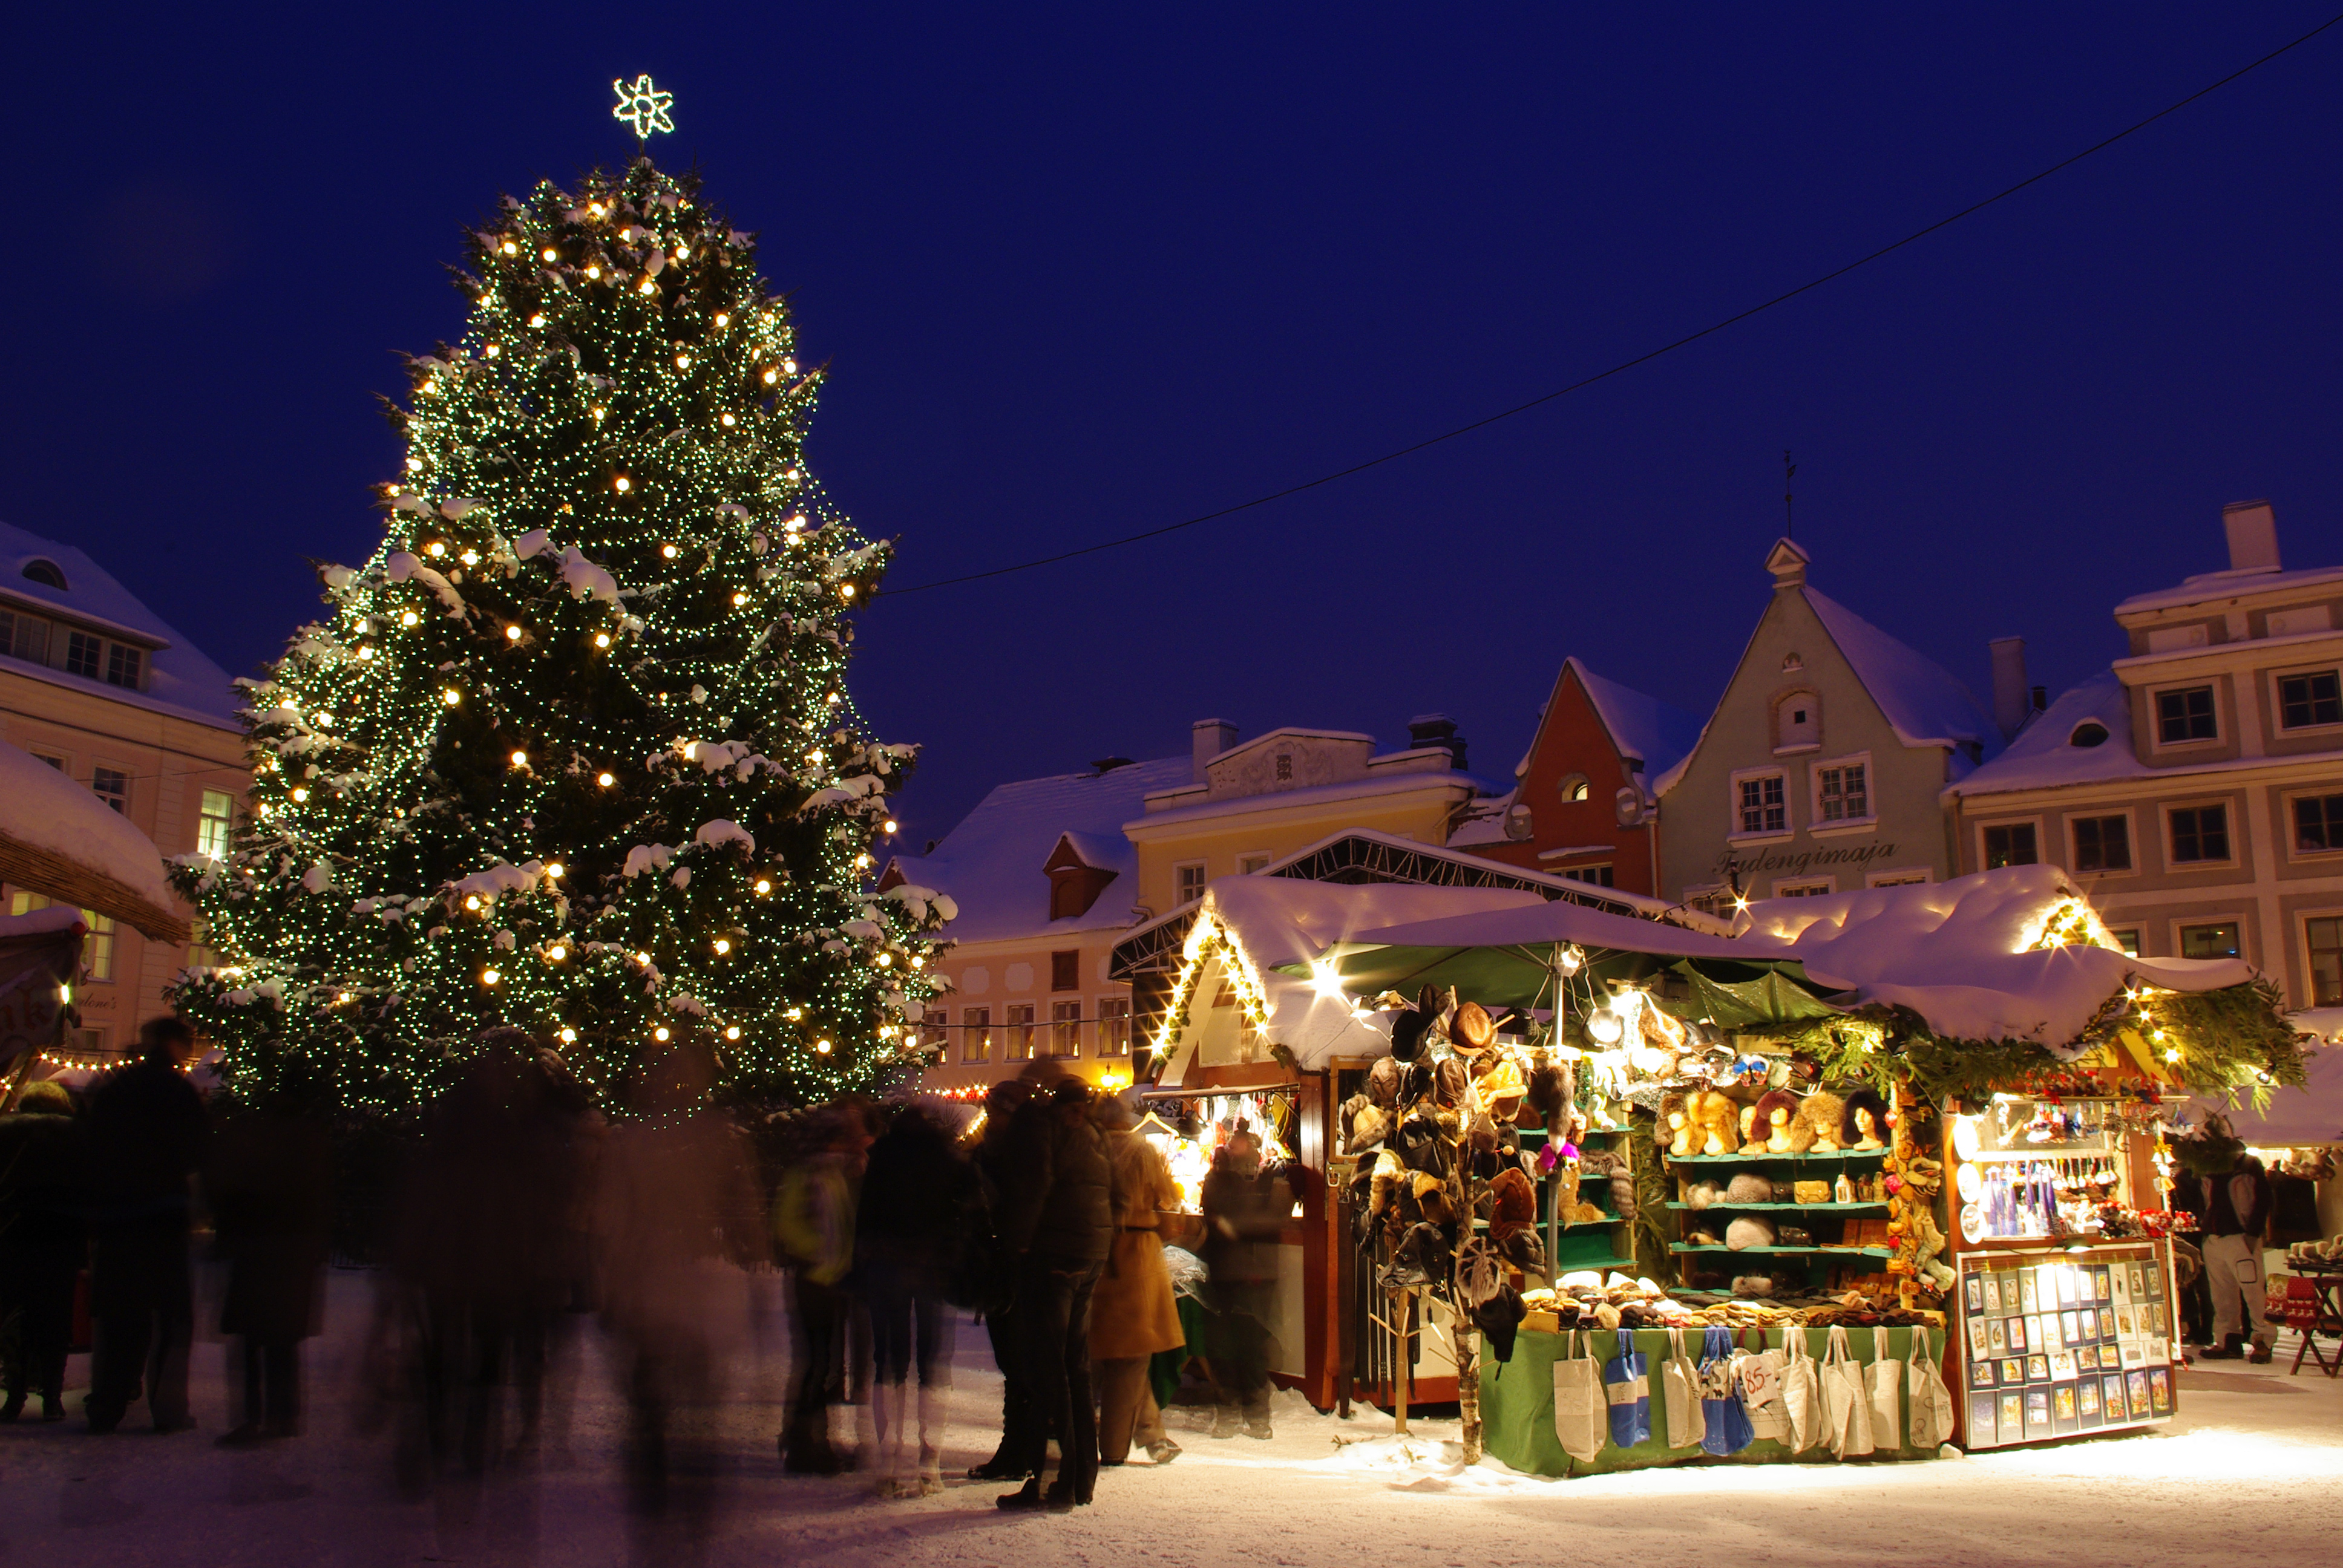 Christmas market, Getty Images